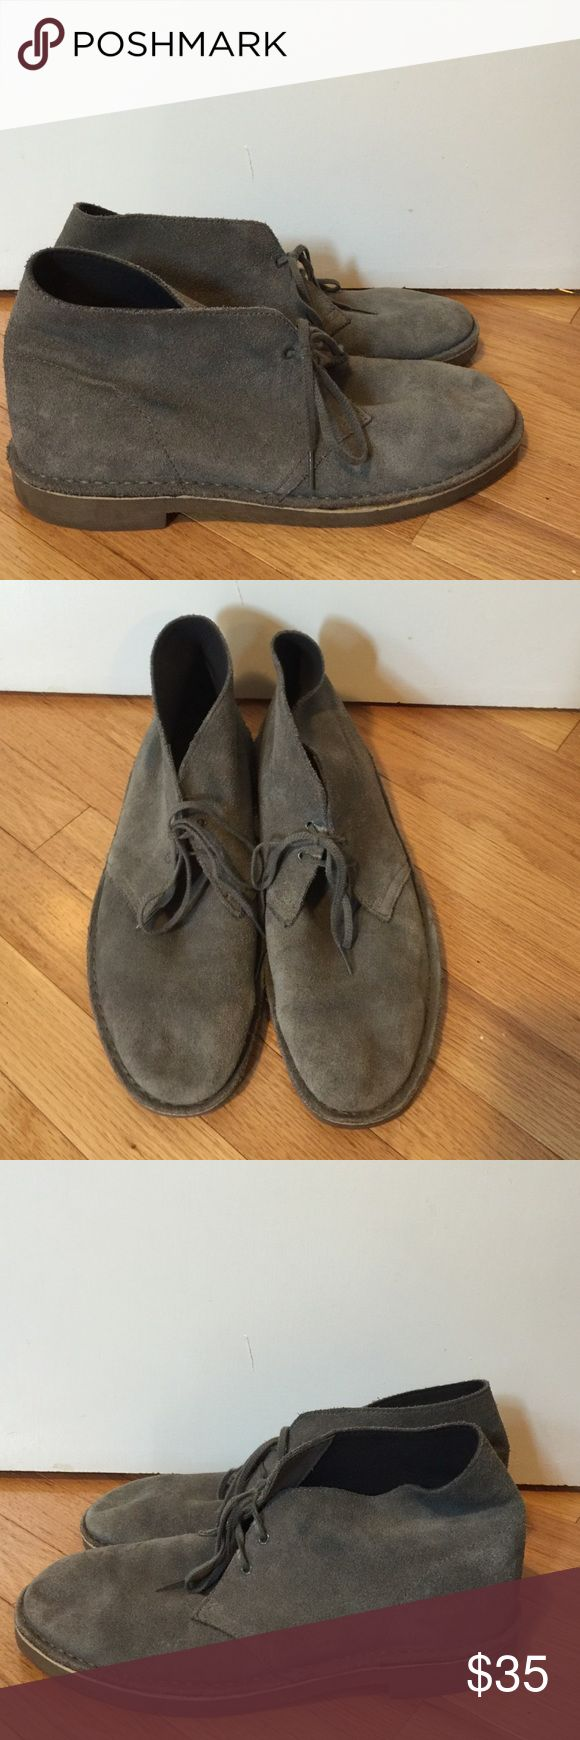 CLARKS Men's Gray Suede Chukka Boot sz 11.5 CLARKS Men's Gray Suede Chukka Boot sz 11.5. Worn a few times. Soles in great condition, upper shows some signs of wear. Dark blue discoloration (shown in pic). I don't find this is noticeable at all when wearing! Clarks Shoes Chukka Boots